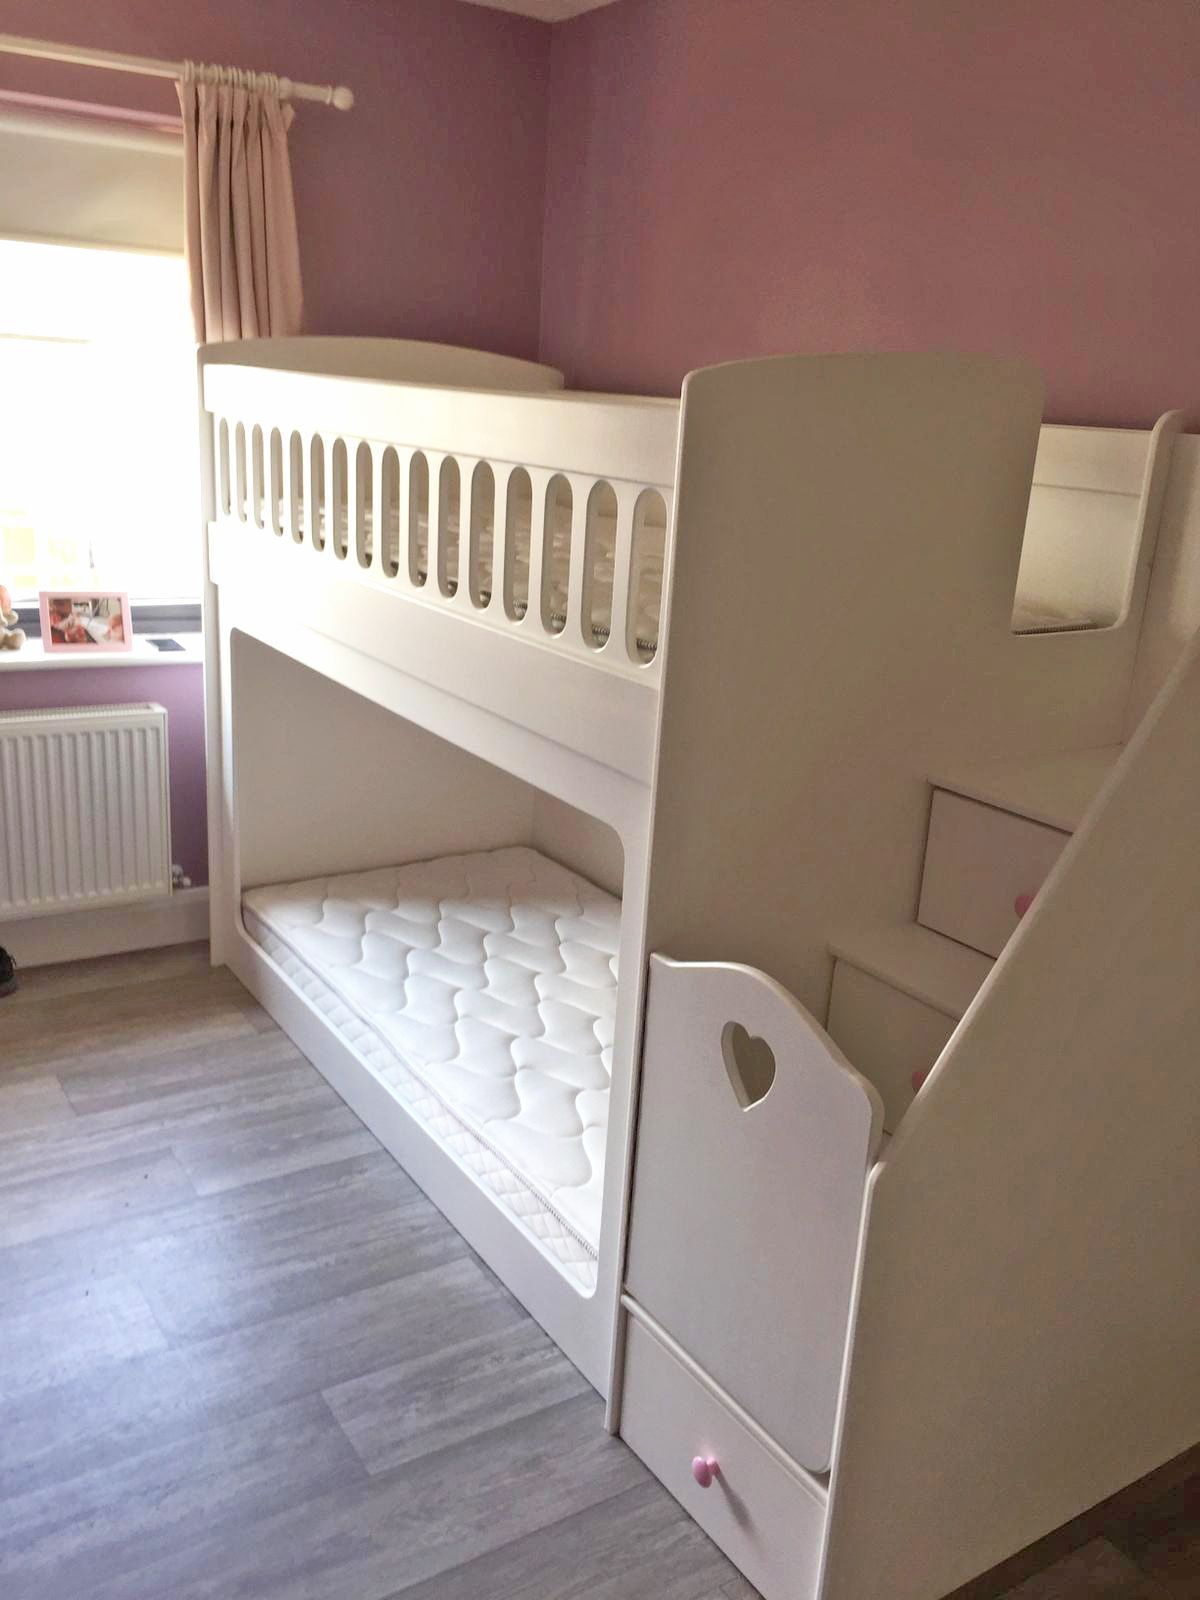 For a first time bed, our Low Brooke Bunk is perfect. It's